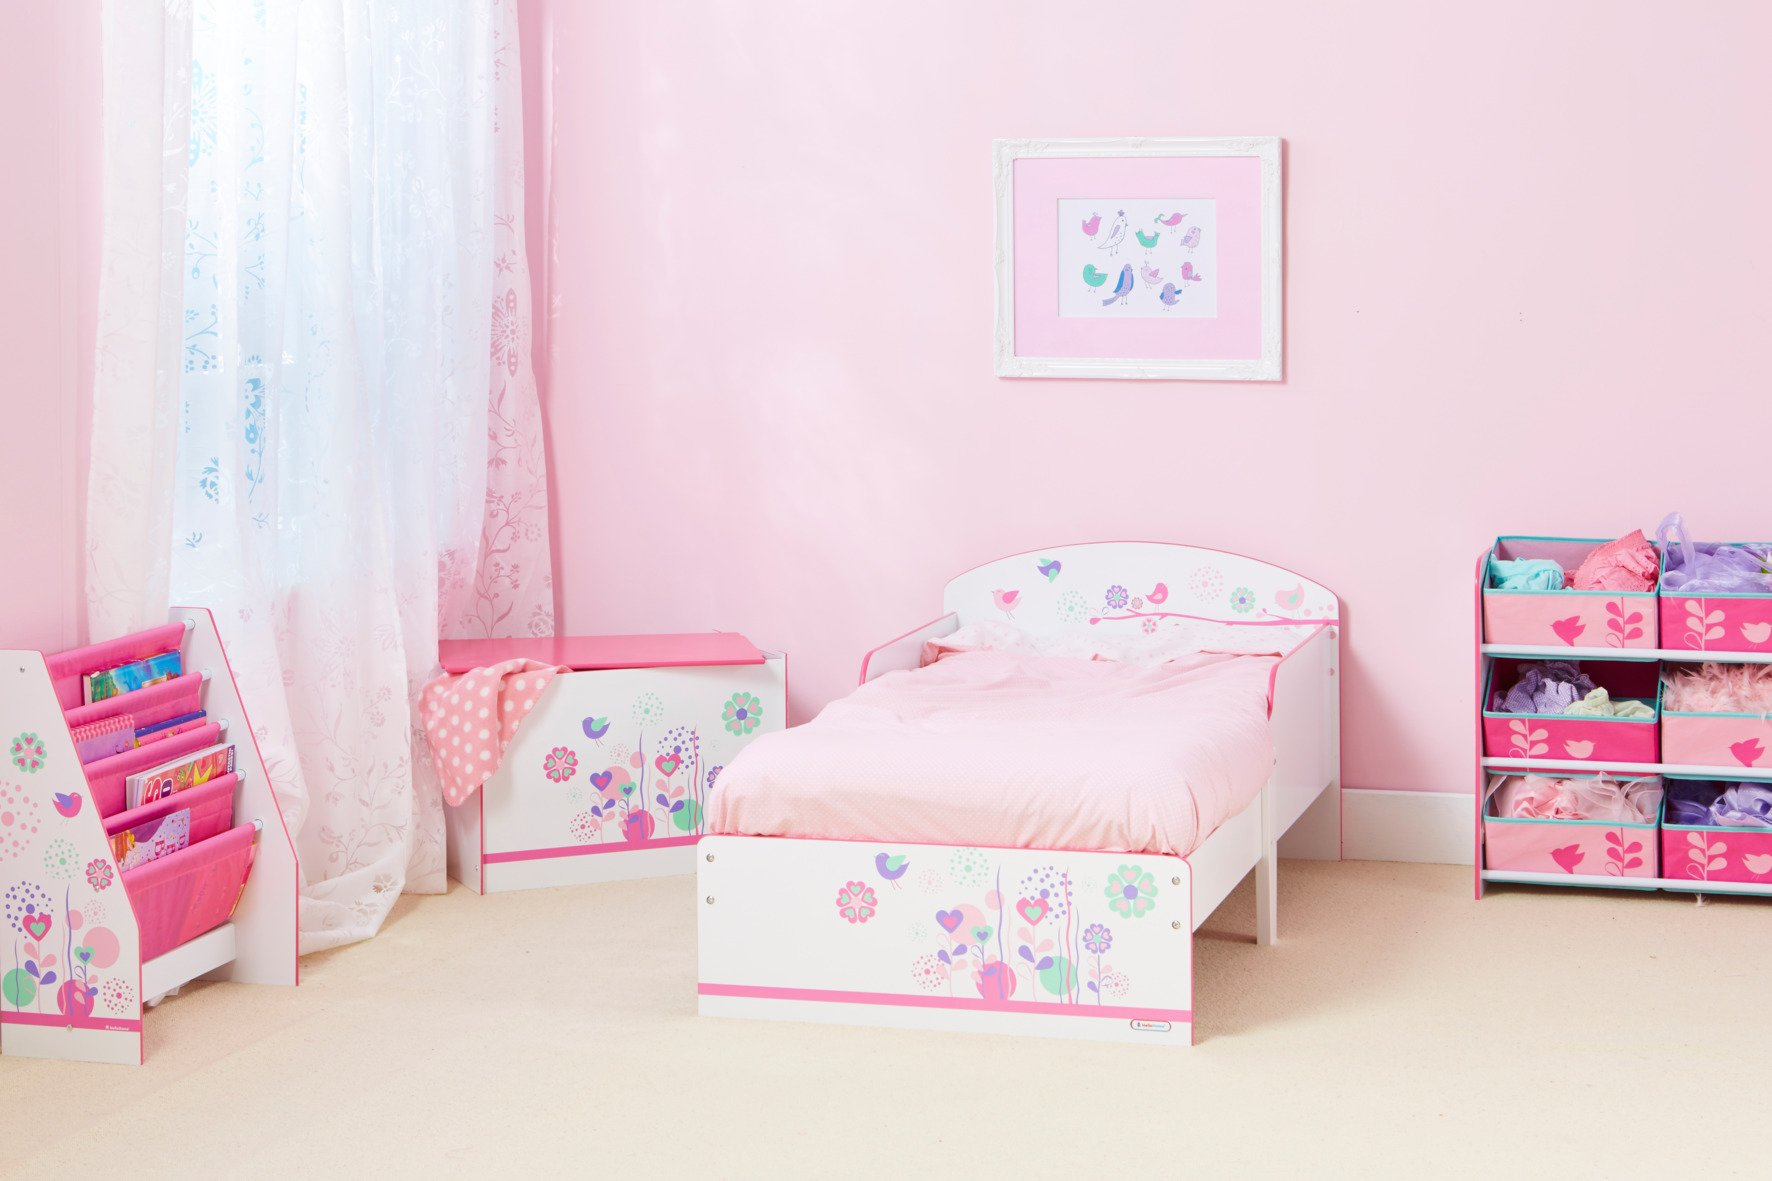 Flowers and Birds Kids Toddler Bed by HelloHome  Ideal transition from cot to bed - make the move to her first big bed magical with the Flowers and Birds toddler bed from HelloHome Takes cot bed size mattress - 140cm (l) x 70cm (w). Mattress not included. Assembled size (h)59, (w)77, (l)142cm Suitable for 18 months to 5 years this pink kids' bed is perfect for your little toddler! 6